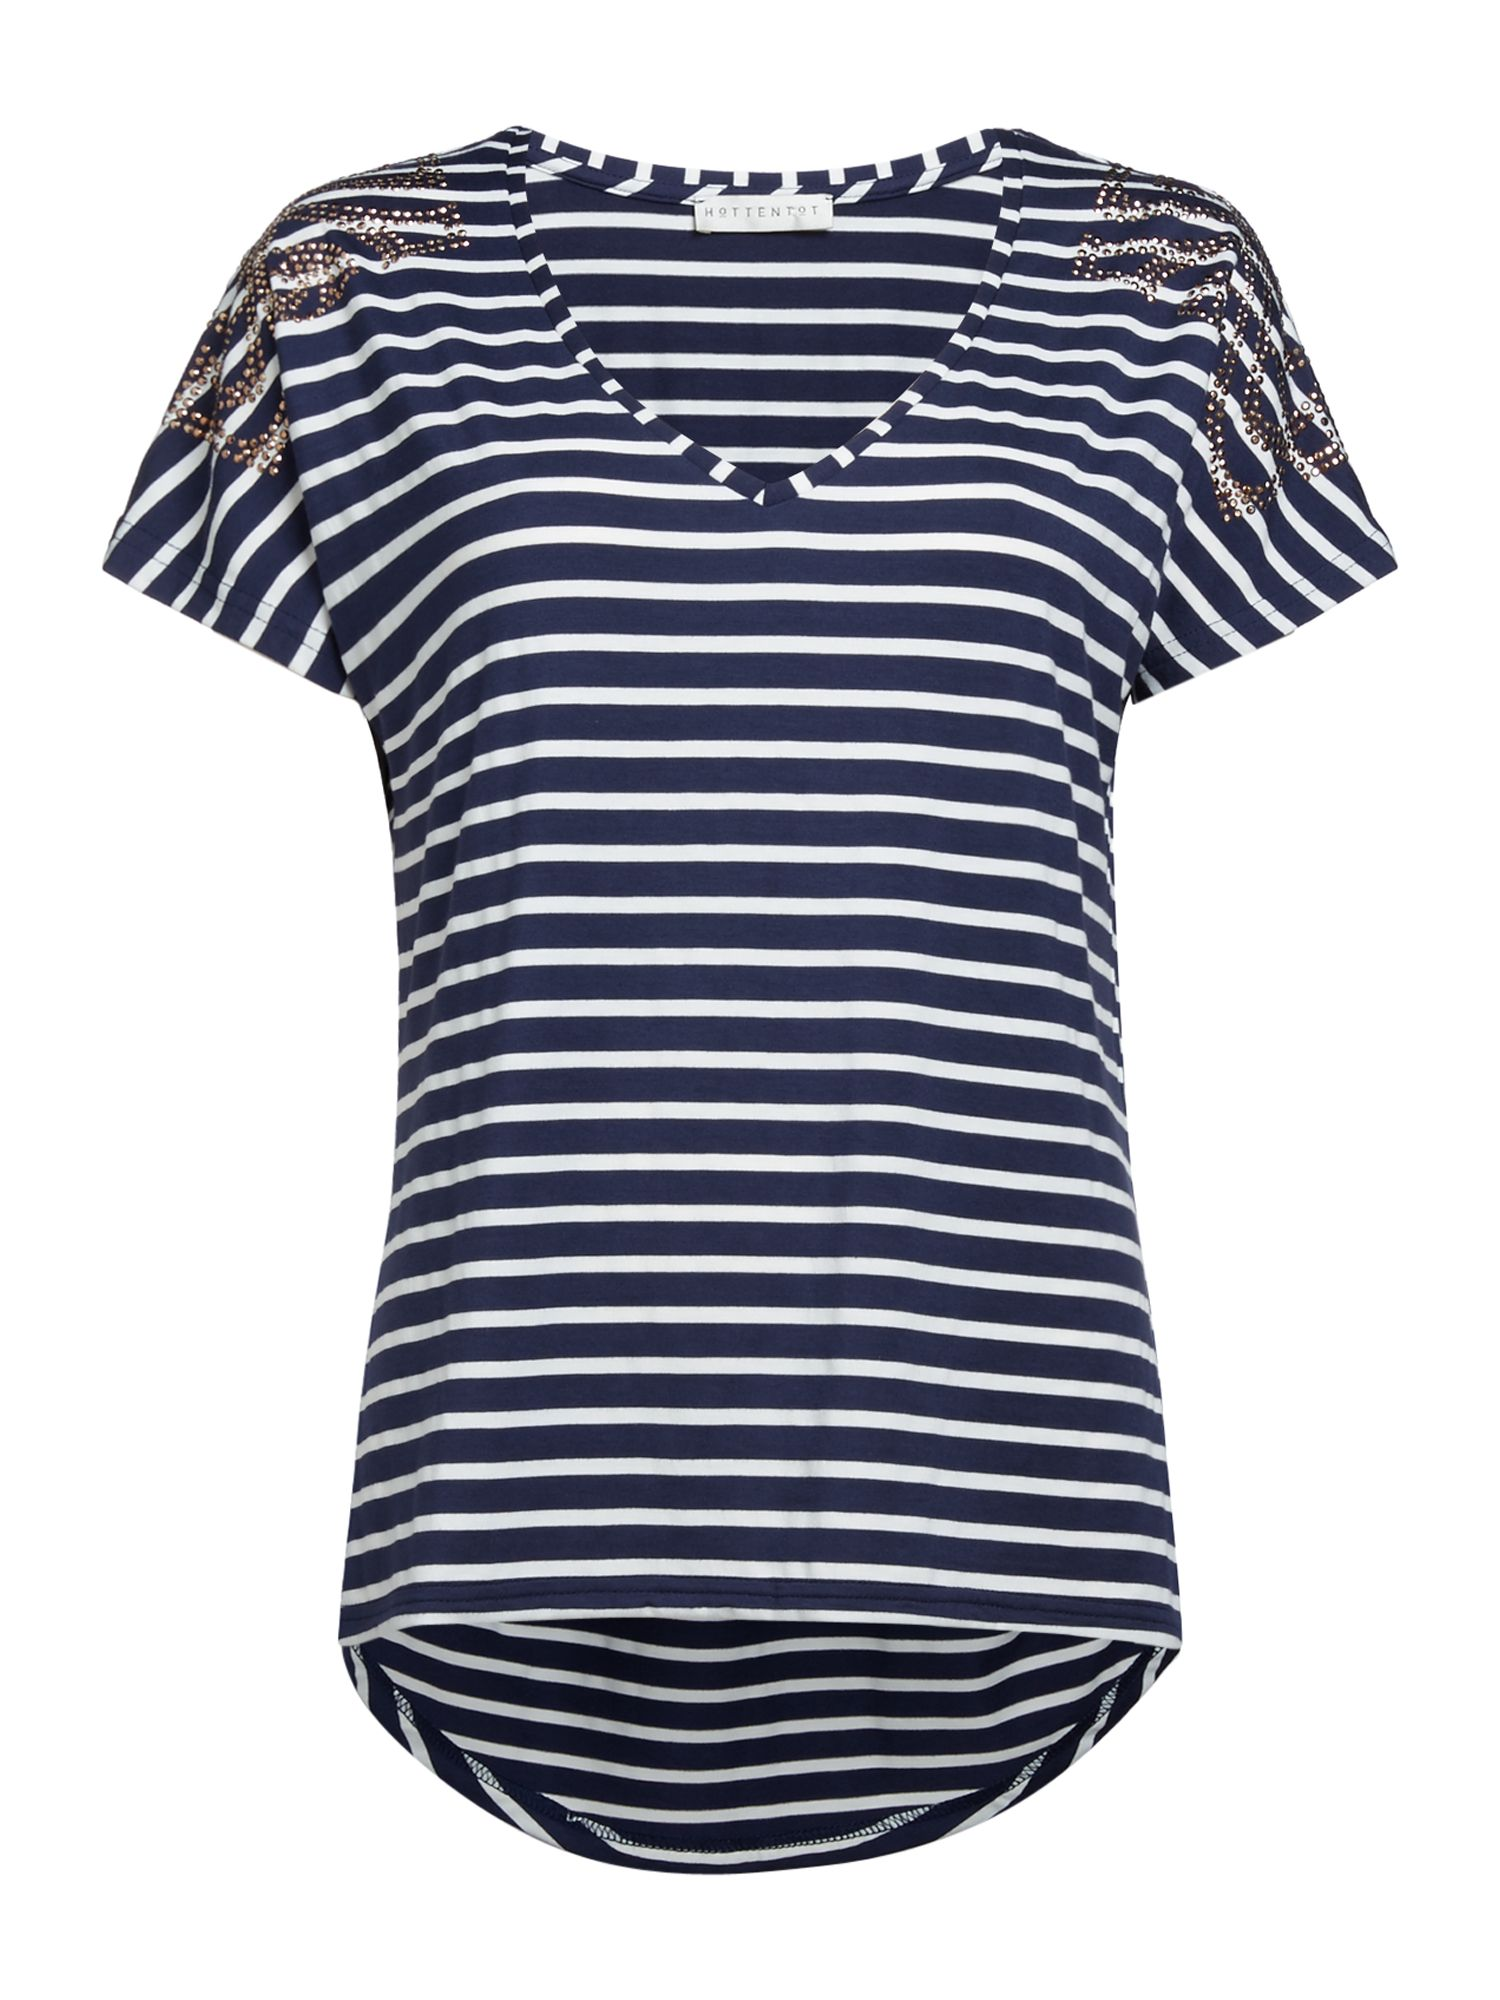 Biba Striped studded shoulder t-shirt, Multi-Coloured